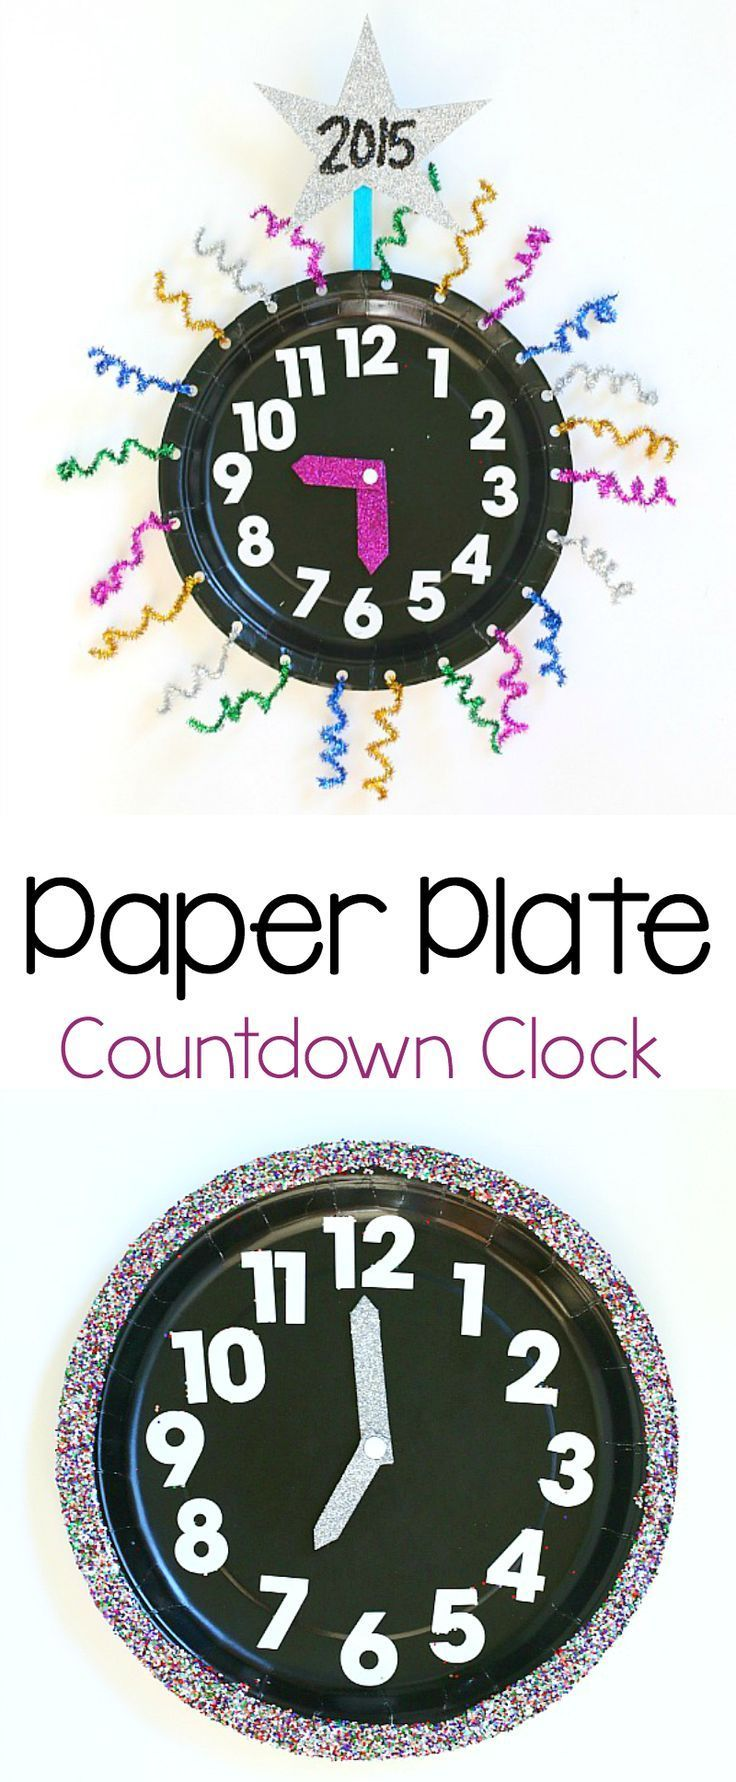 New Year's Eve with Kids Countdown Clock Craft Using